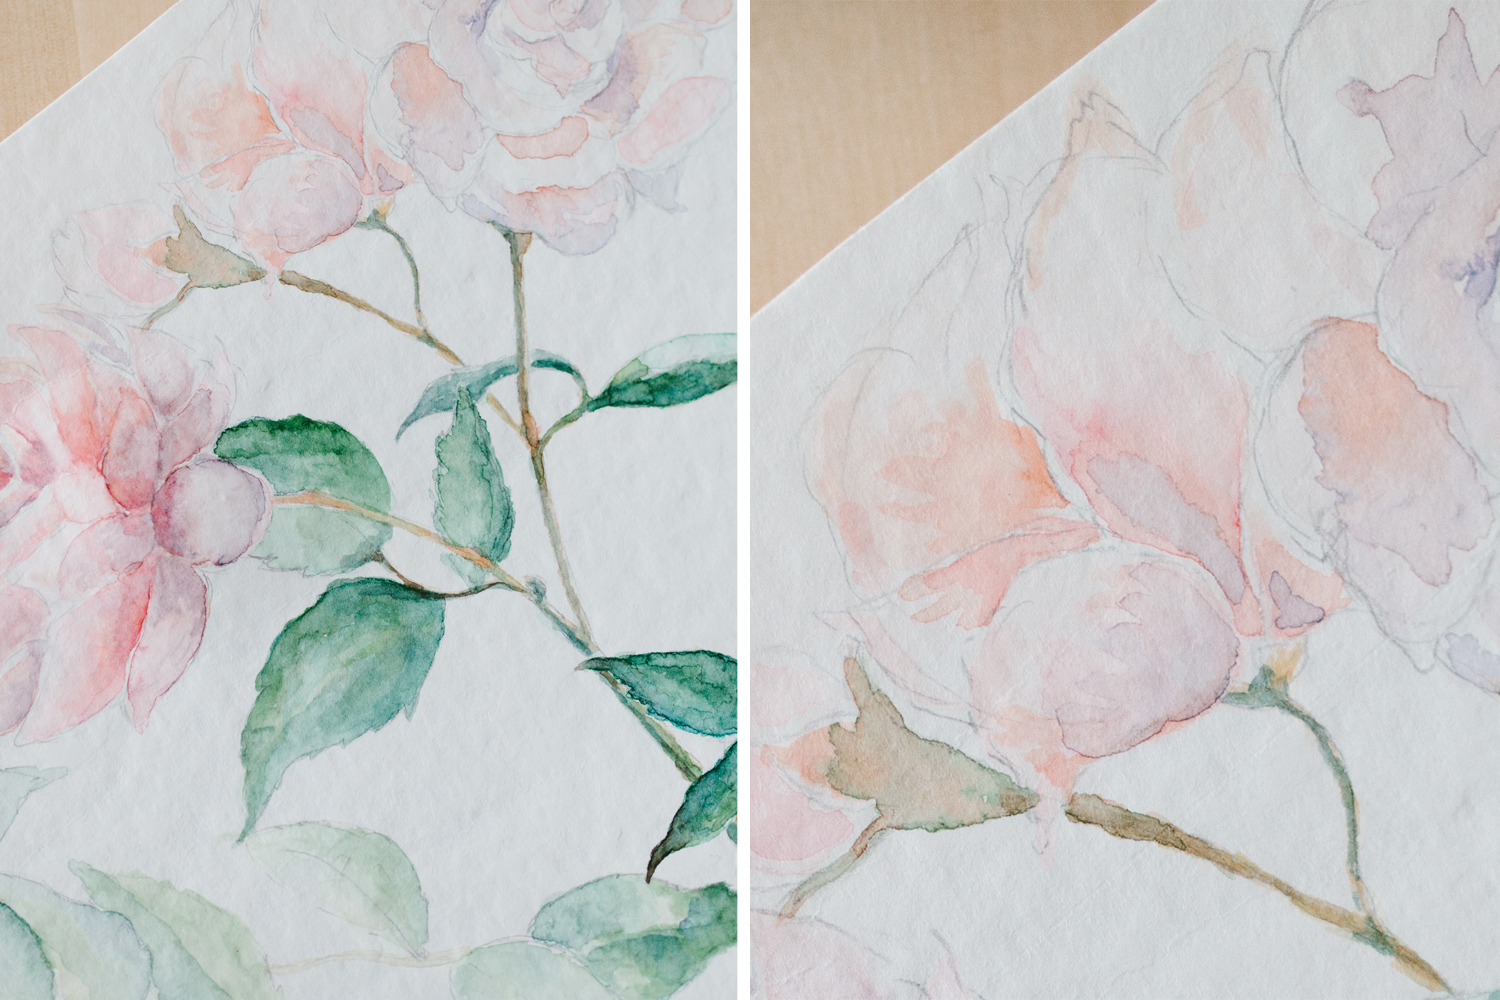 Rose_watercolor_willow visuals 1